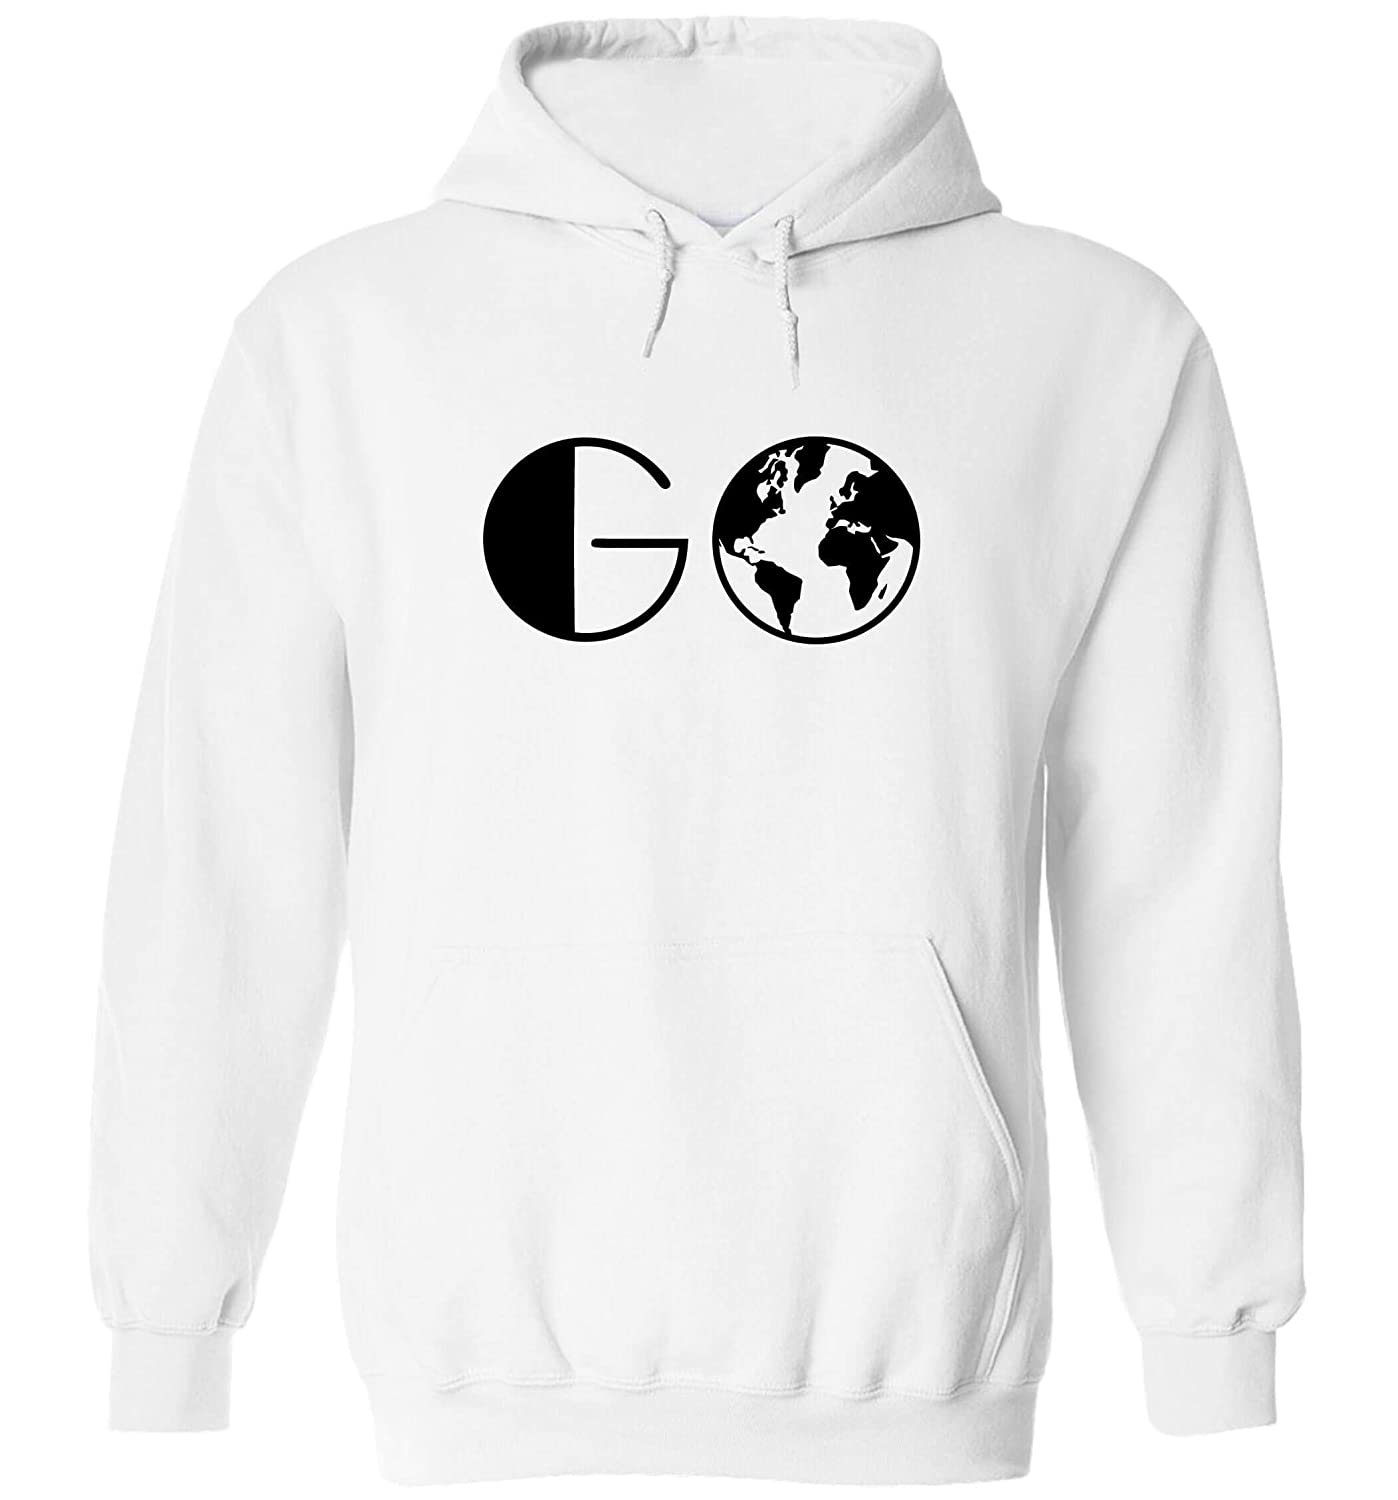 KNOTTY KONCEPTS - Go Travel - Hoodie